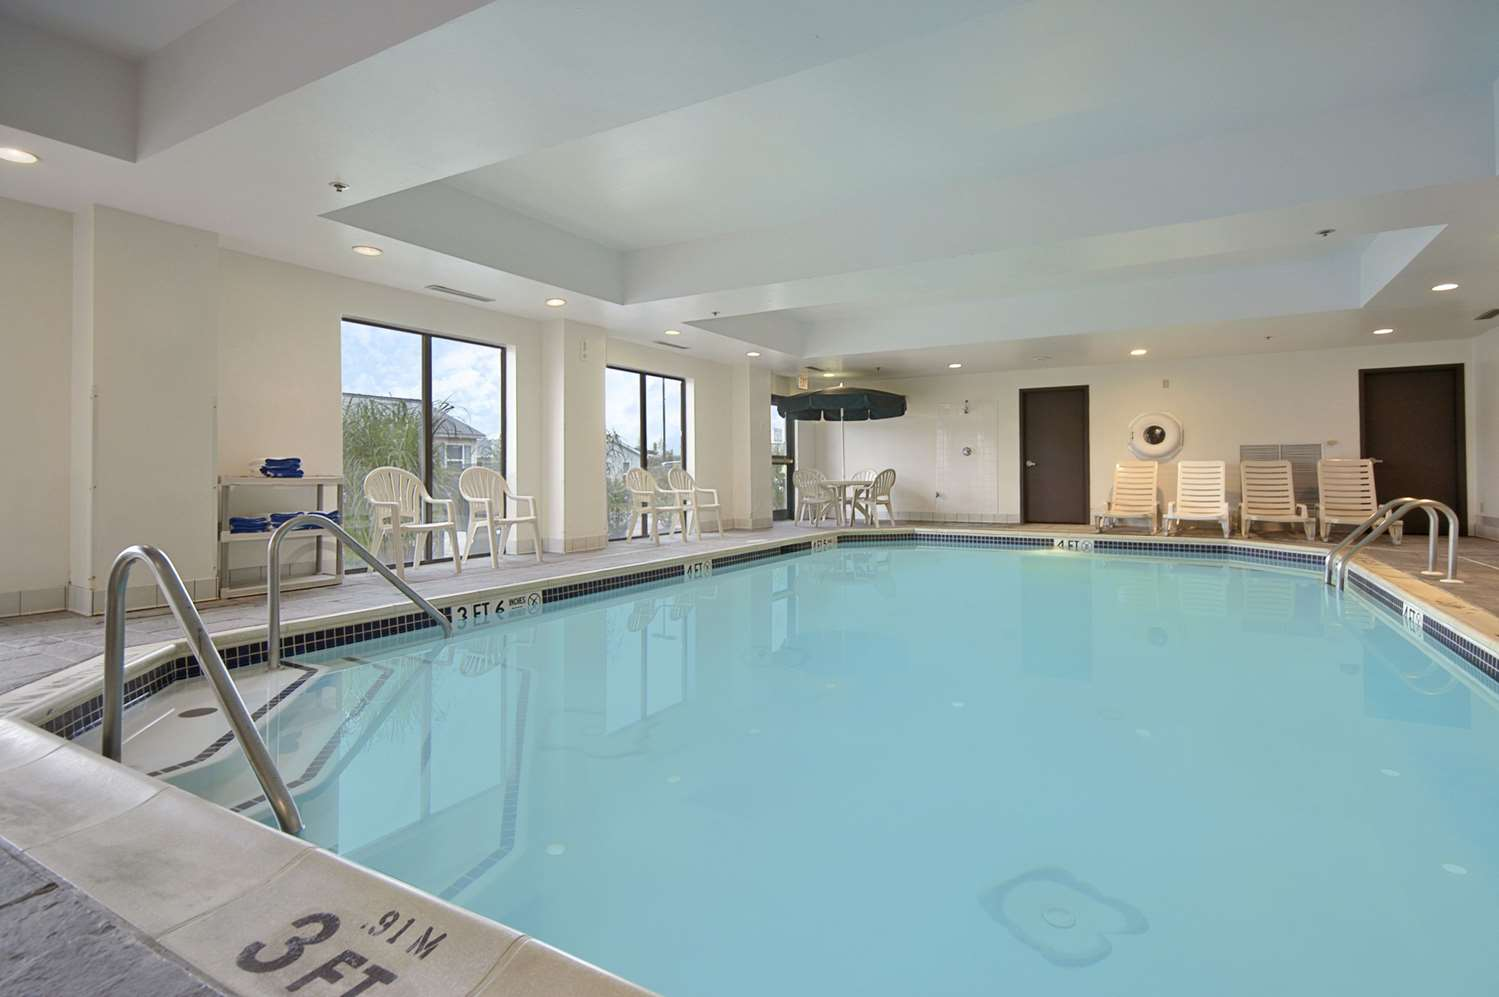 Pool - Wingate by Wyndham Hotel Allentown